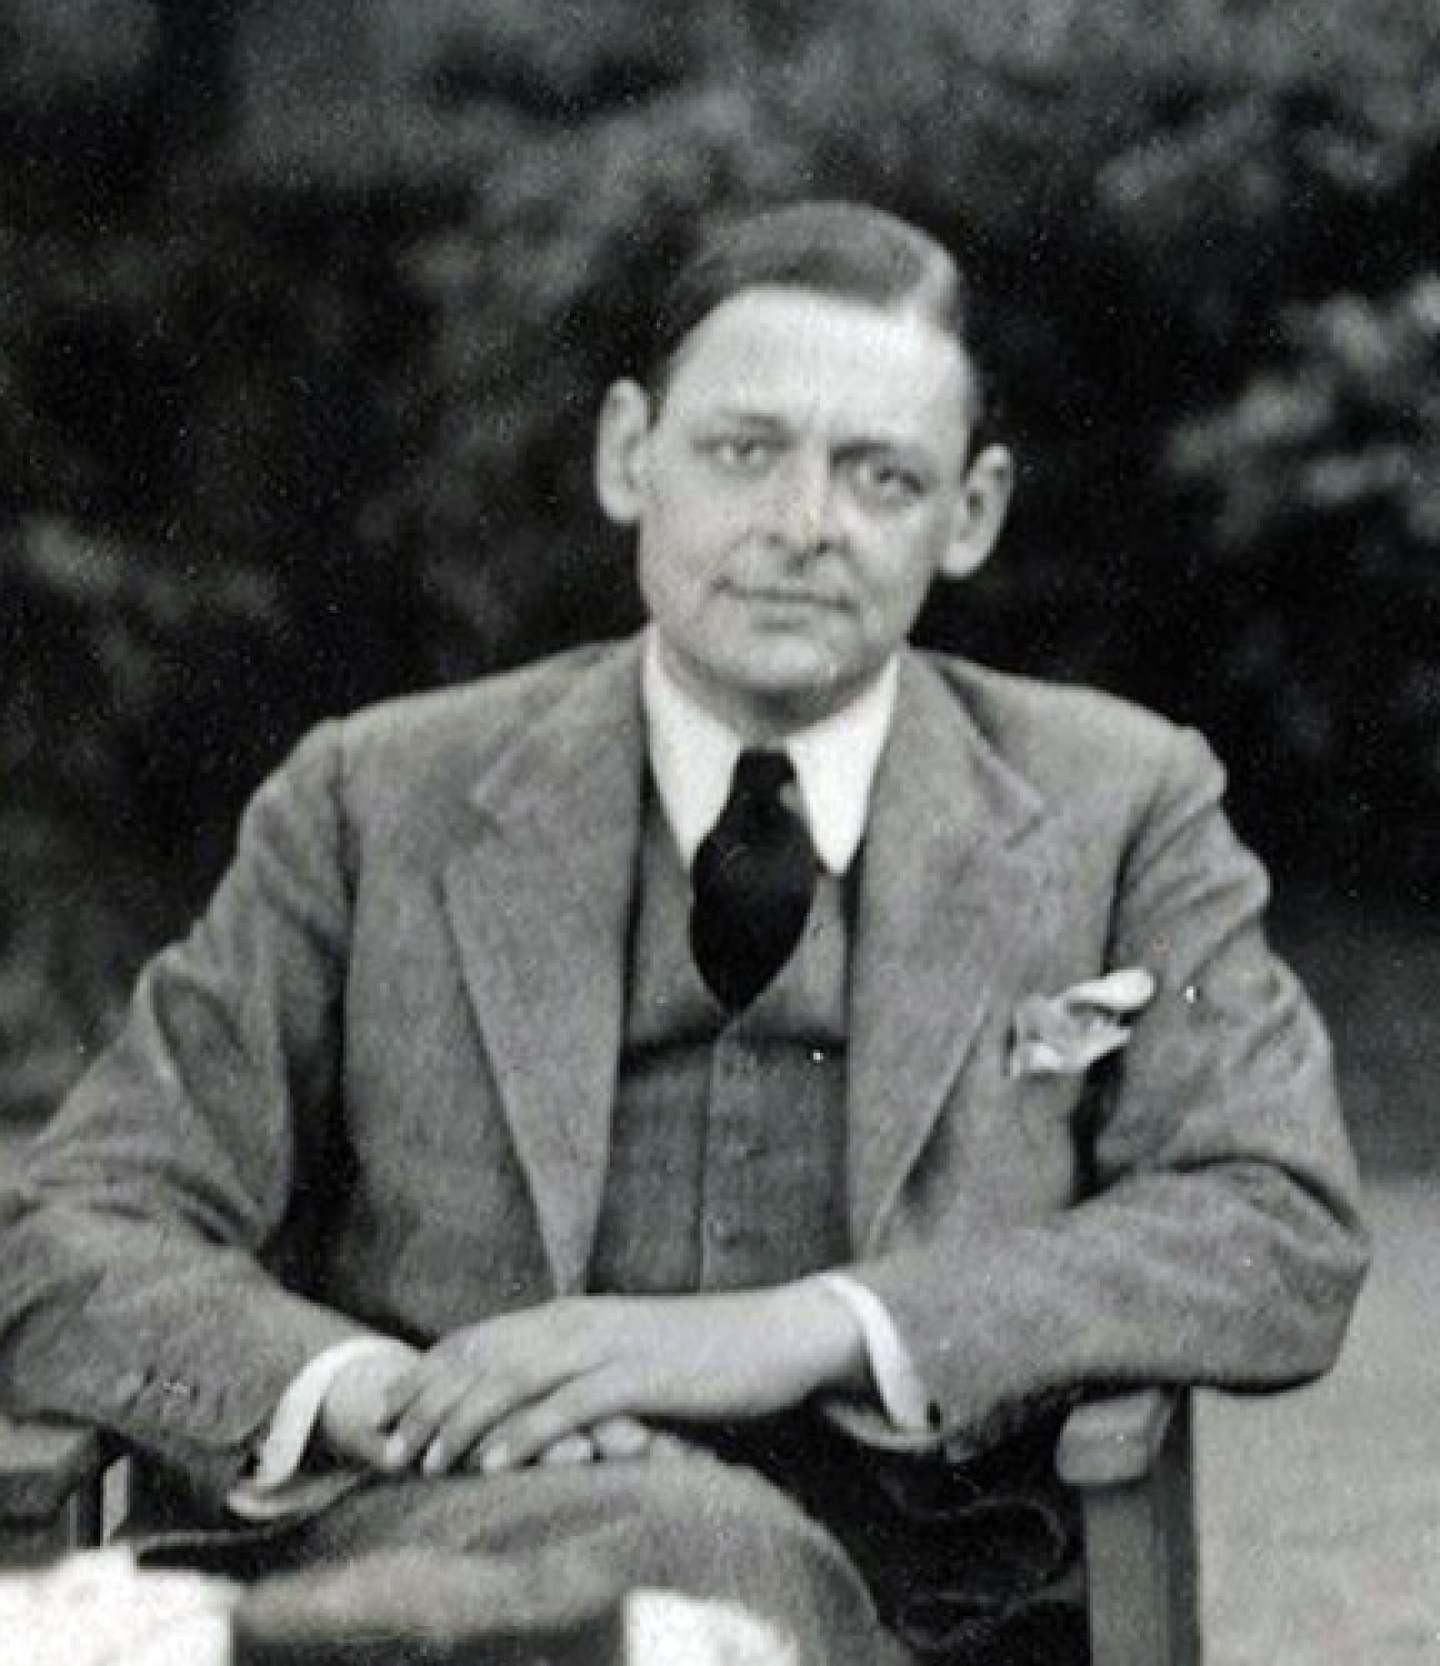 A photo of T. S. Eliot